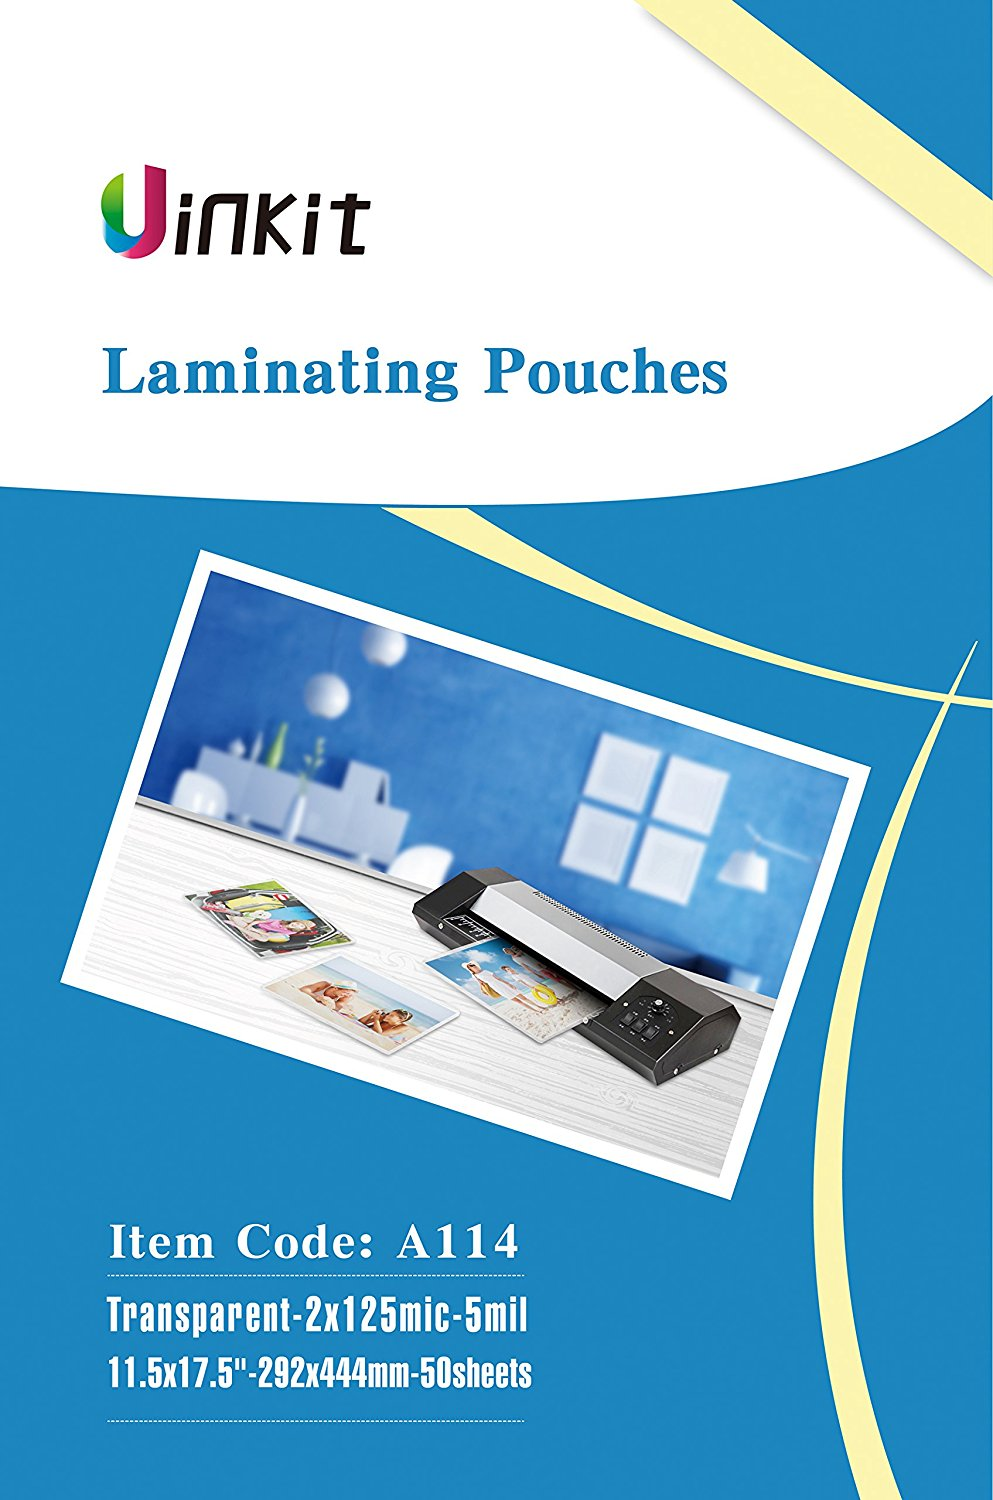 Cheap 11x17 Laminating Sheets Find 11x17 Laminating Sheets Deals On Line At Alibaba Com